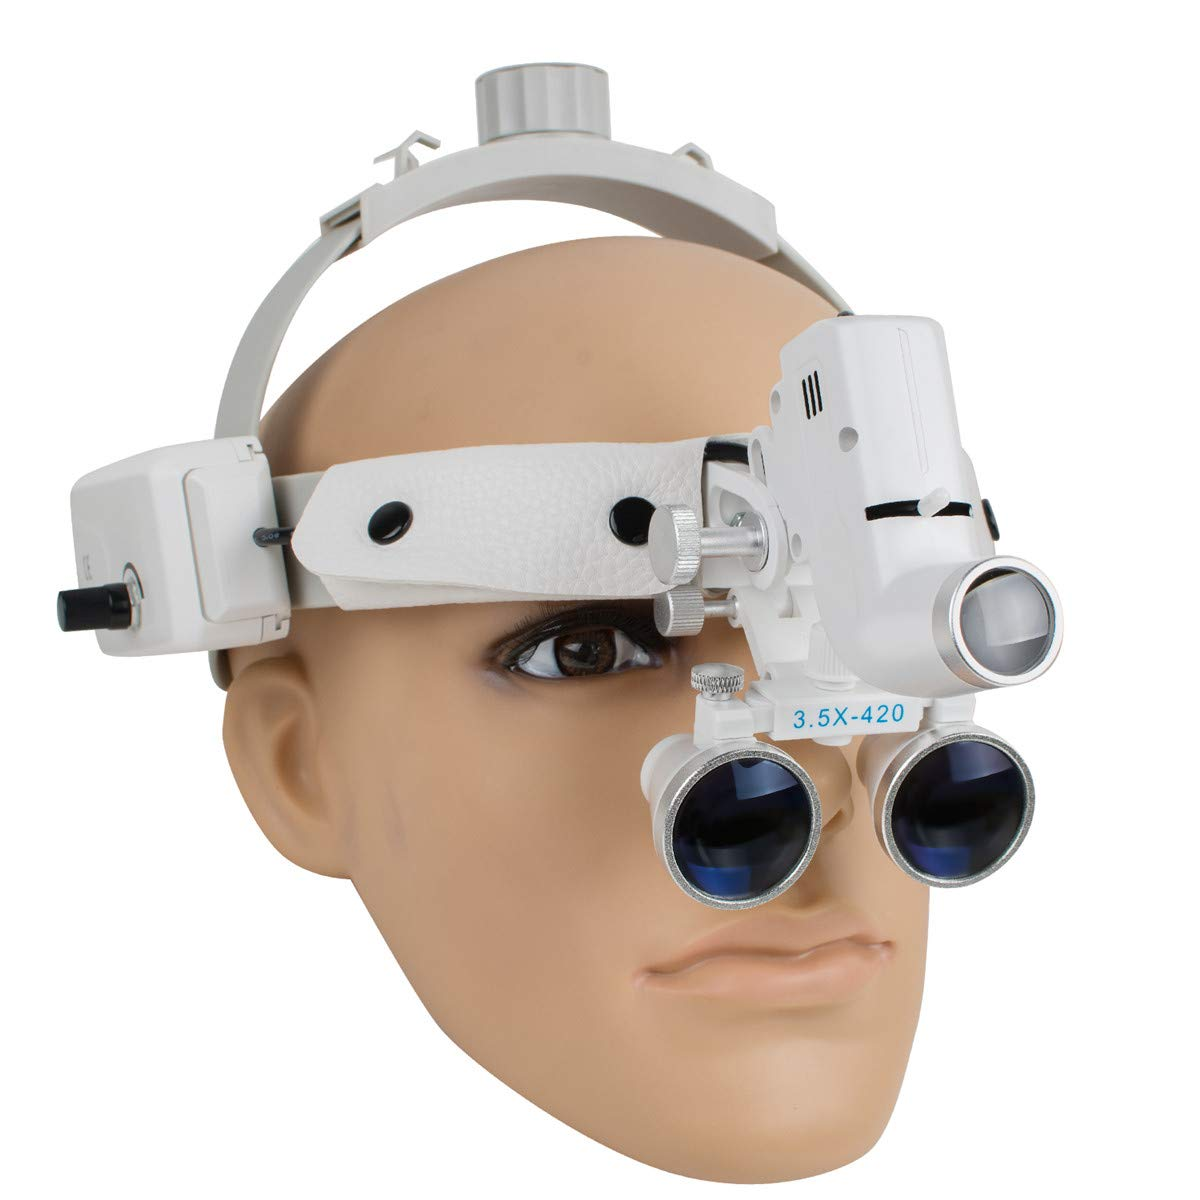 Dental Binocular Loupes Glasses Head Band Magnifier with LED Light 3.5X-420 Optical